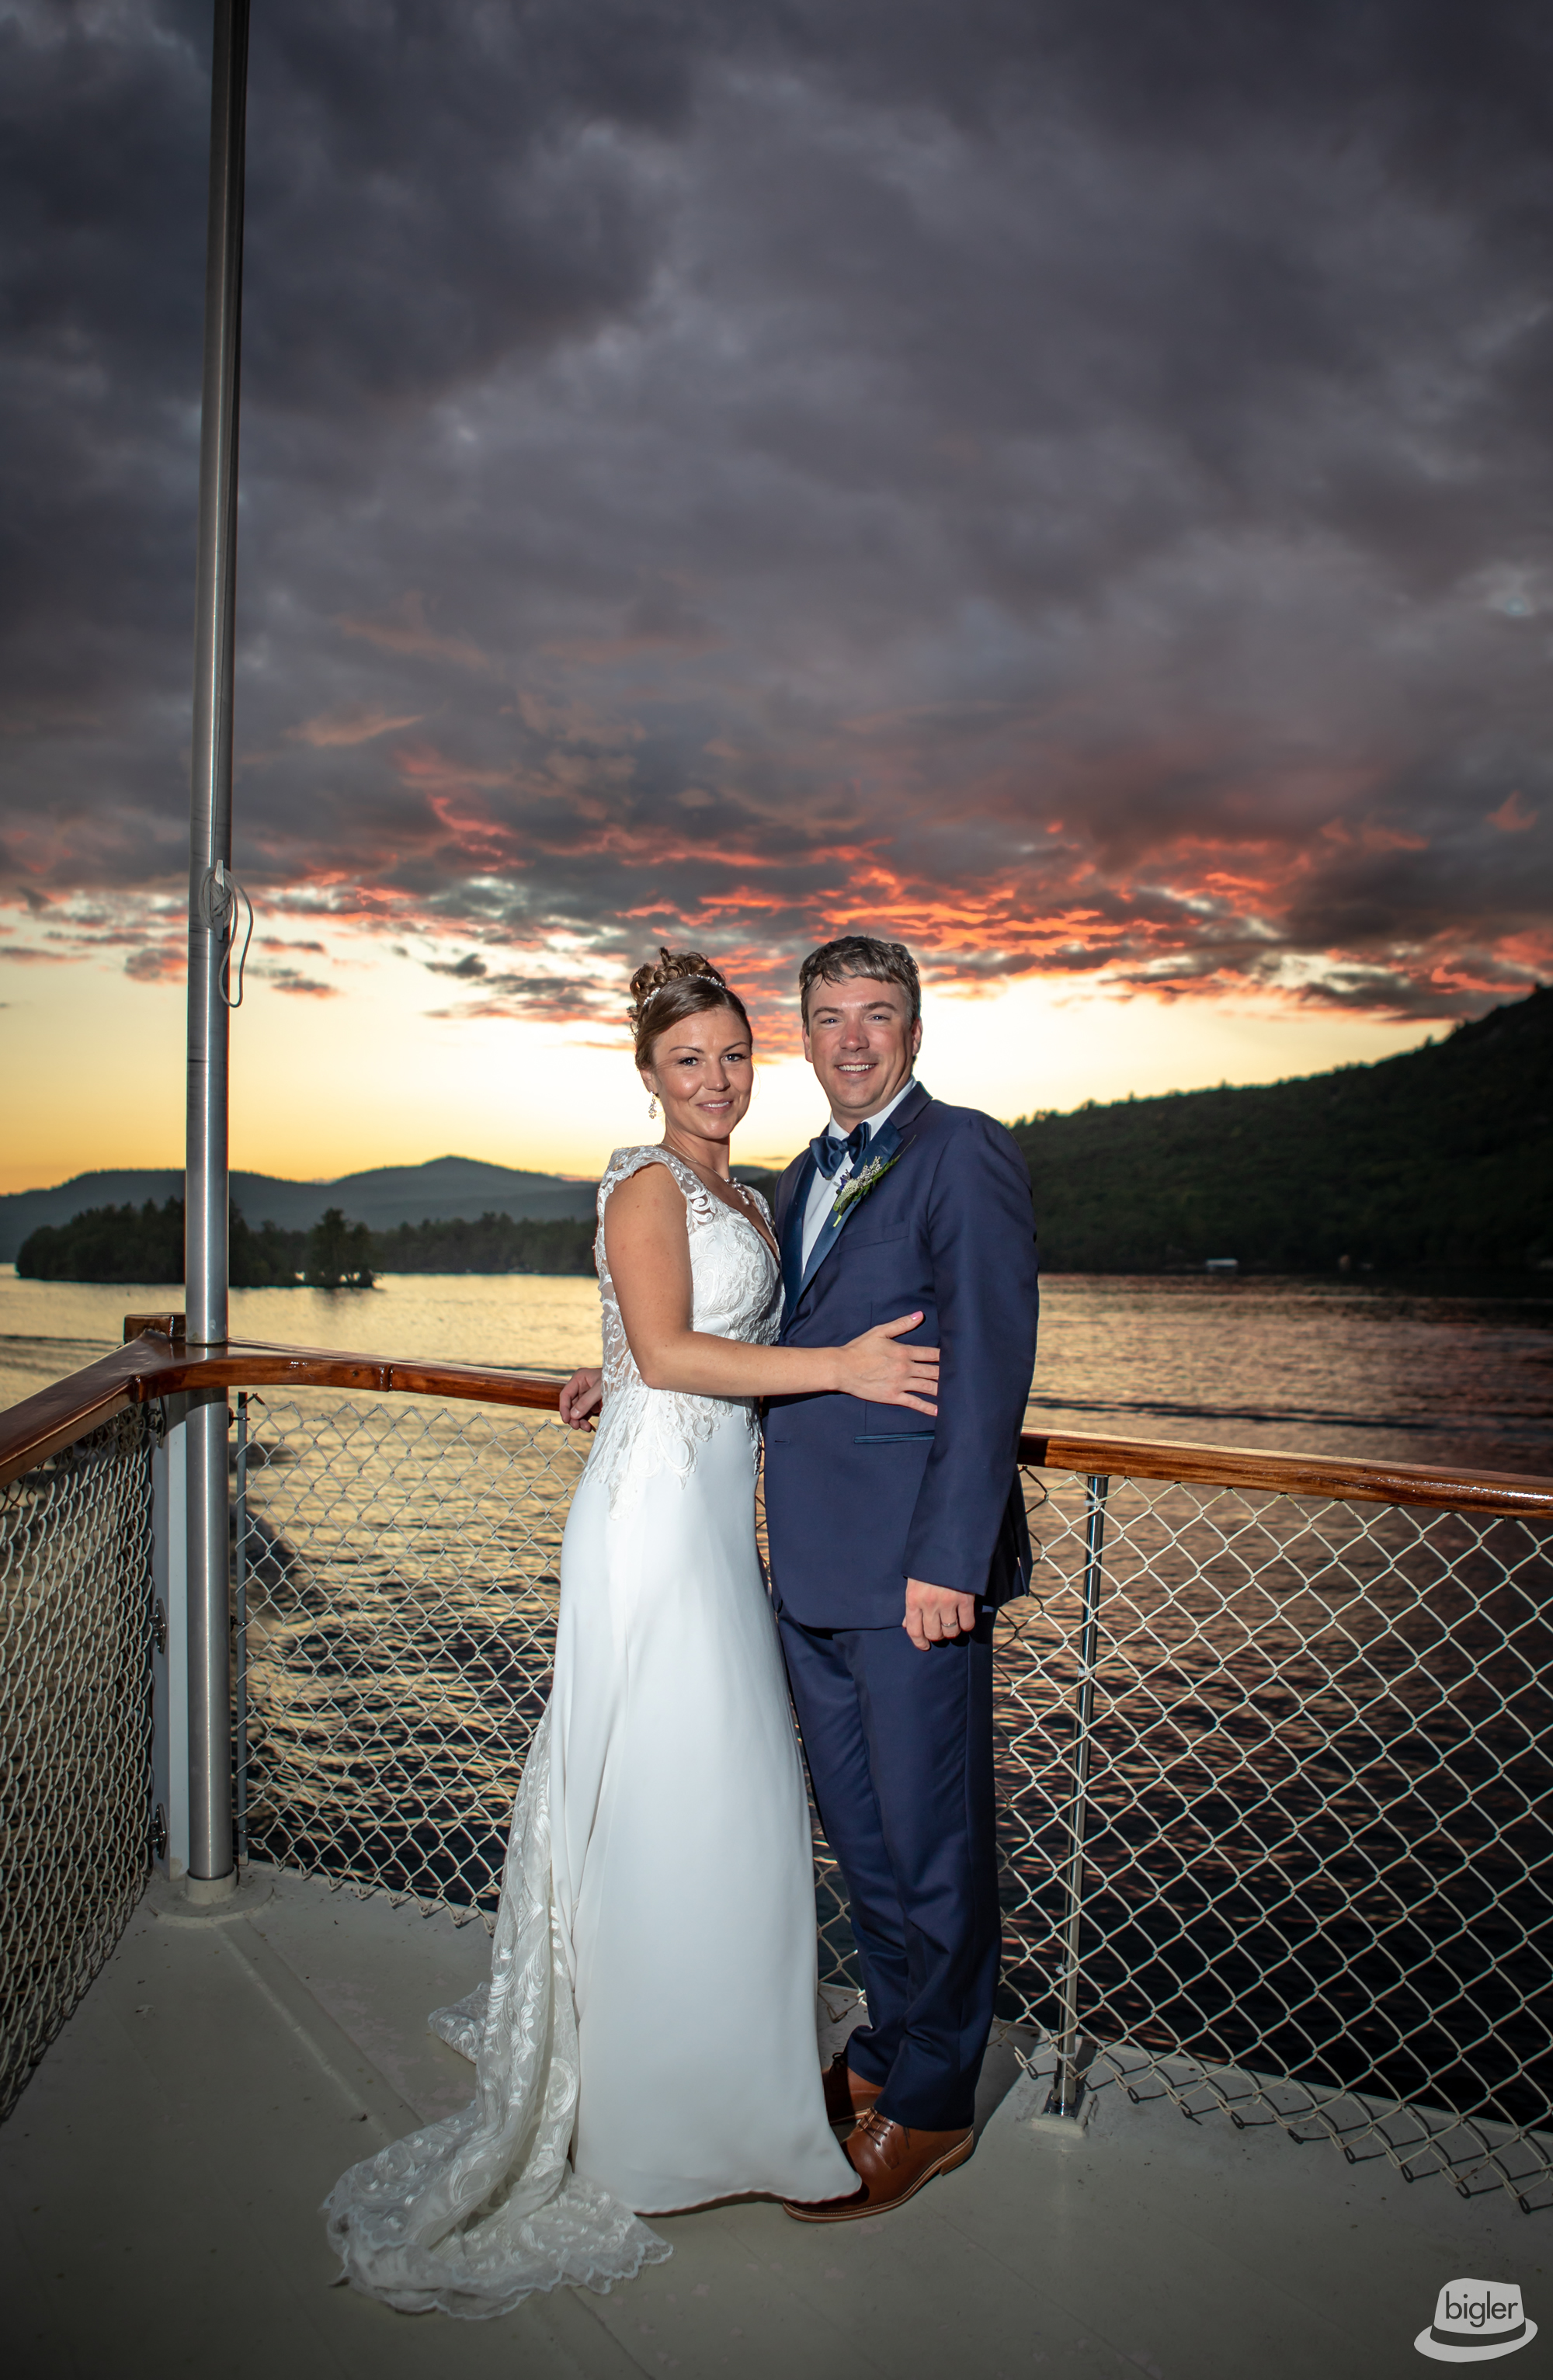 20180915_-_32_-_Becca_and_Doug_Lake_George_Wedding